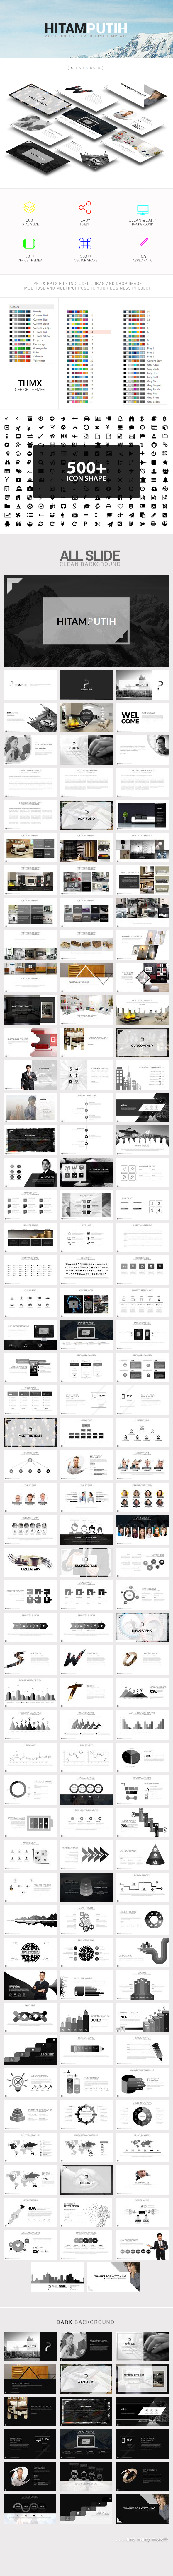 Hitamputih Powerpoint Template - Business PowerPoint Templates